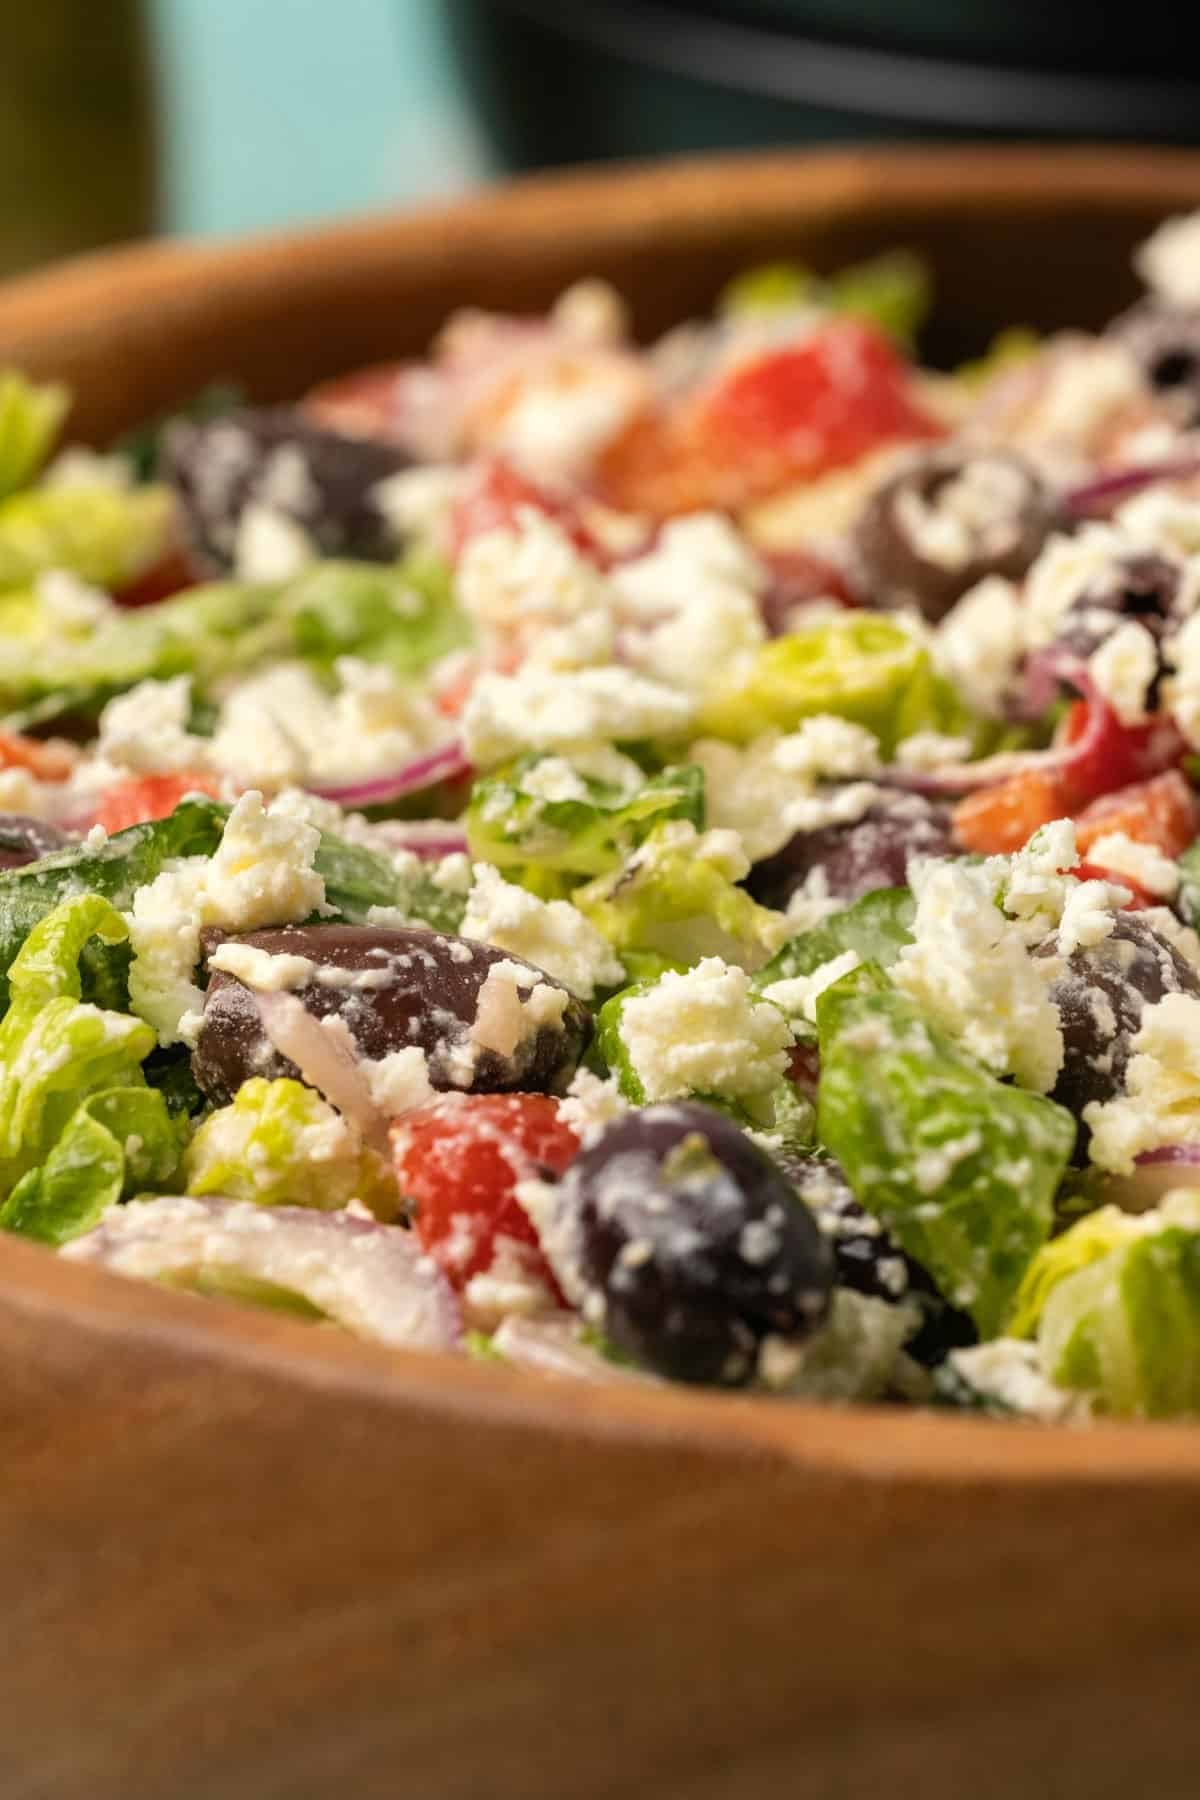 Greek salad topped with crumbled feta cheese.